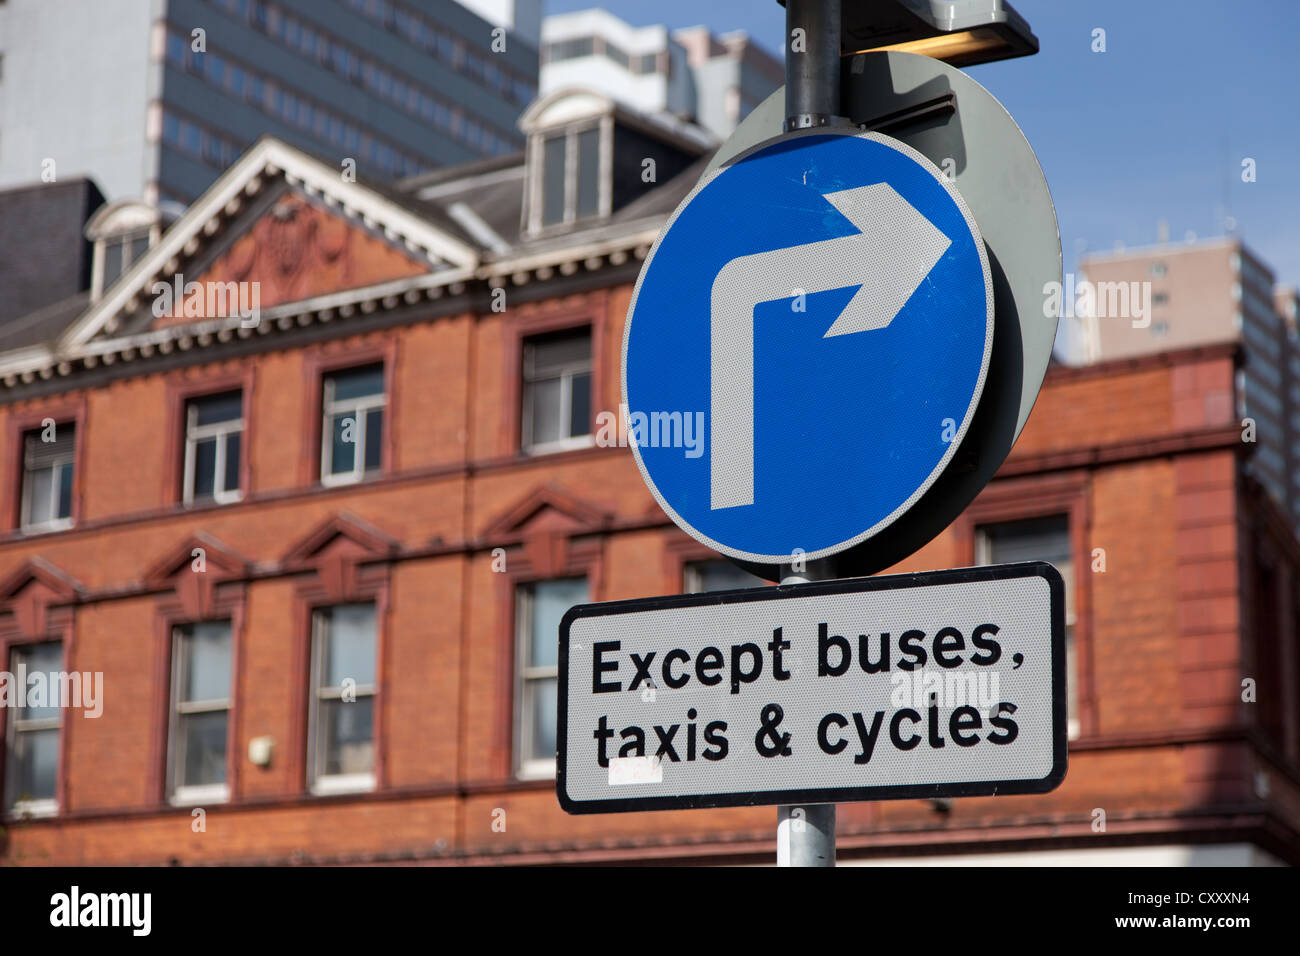 A road sign showing a compulsory right turn but with restrictions - Stock Image